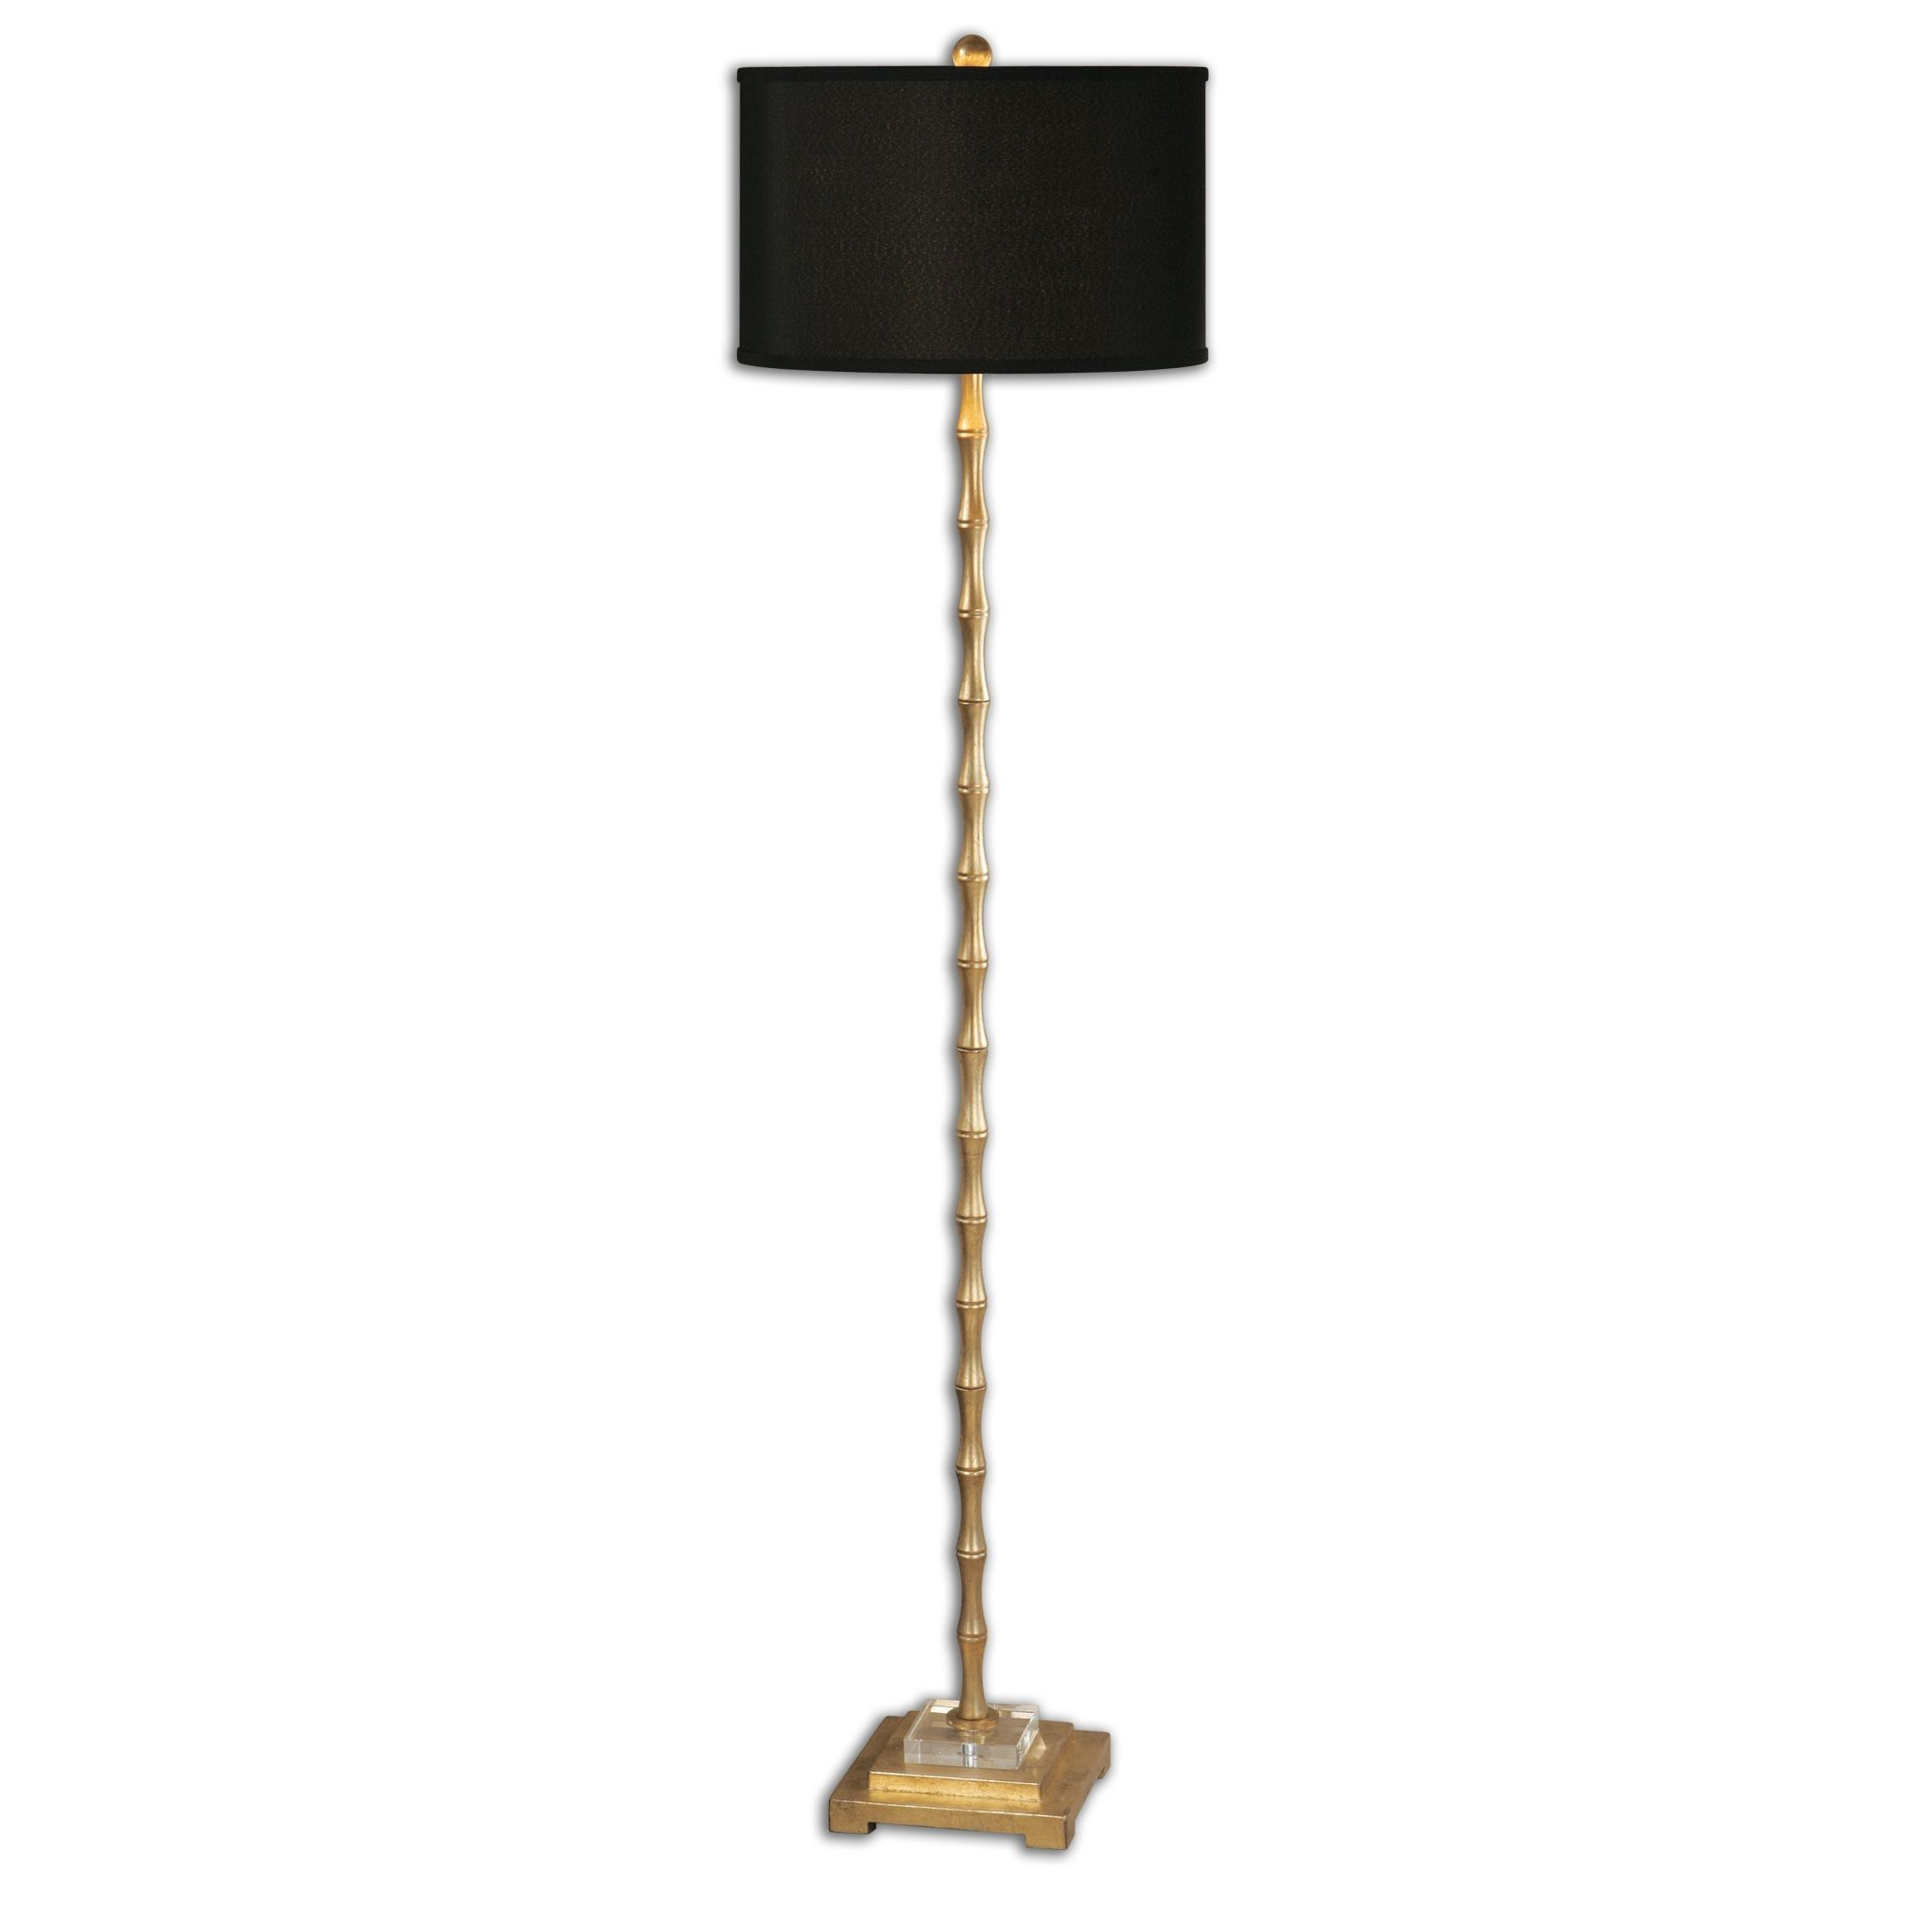 Our Golden Bamboo Floor Lamp Stands Tall In A Refined E Its Finished With Gold Detailing And Sleek Black Shade